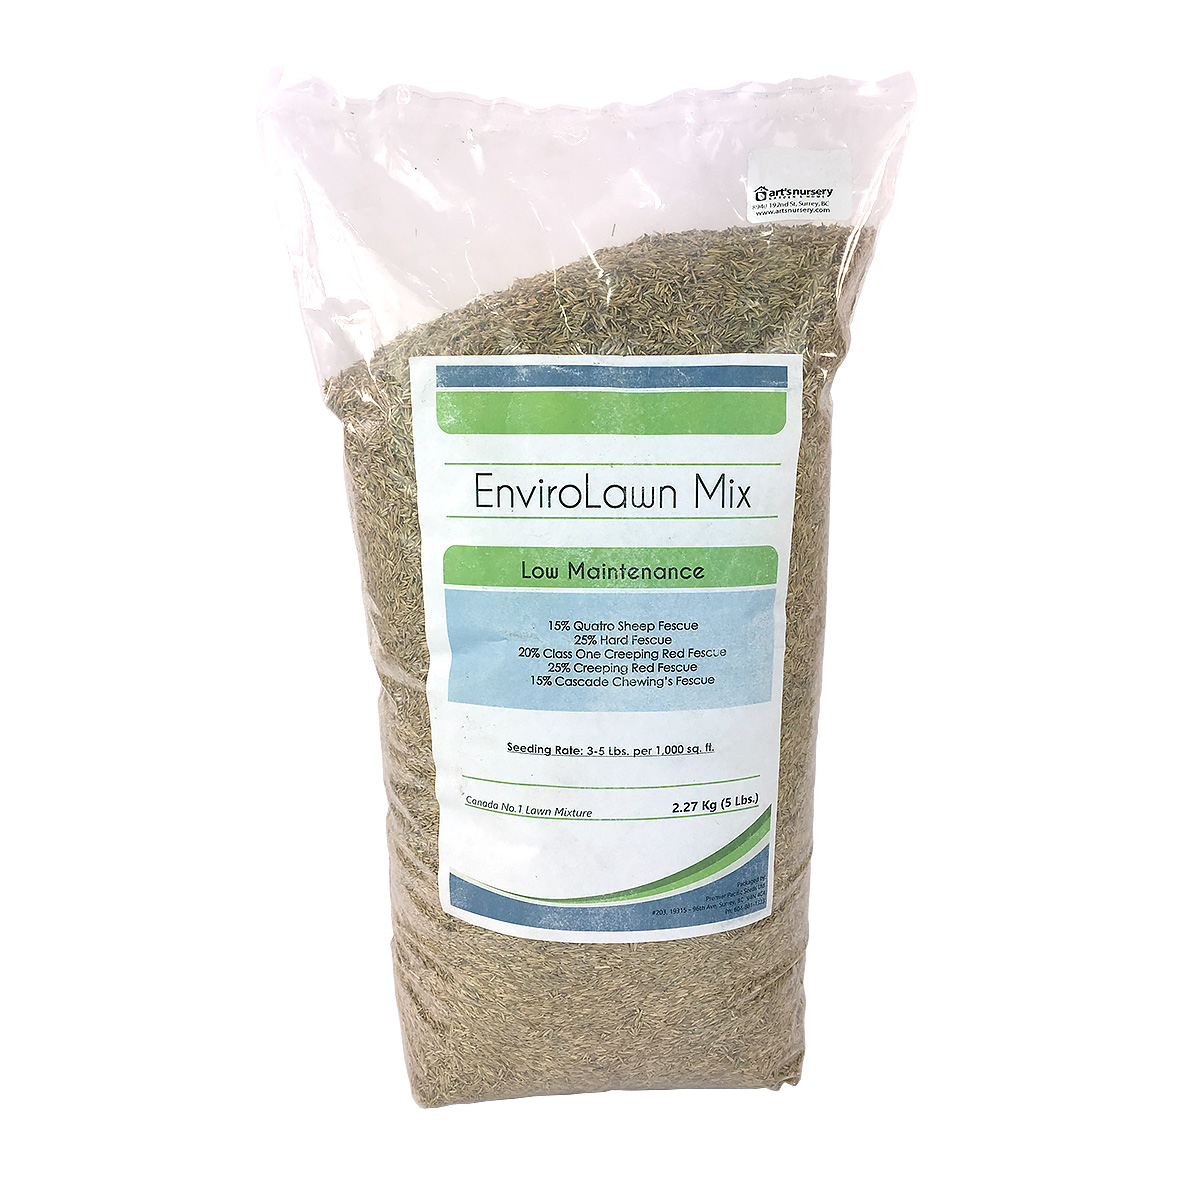 EnviroLawn Mix Low Maintenance Lawn Seed